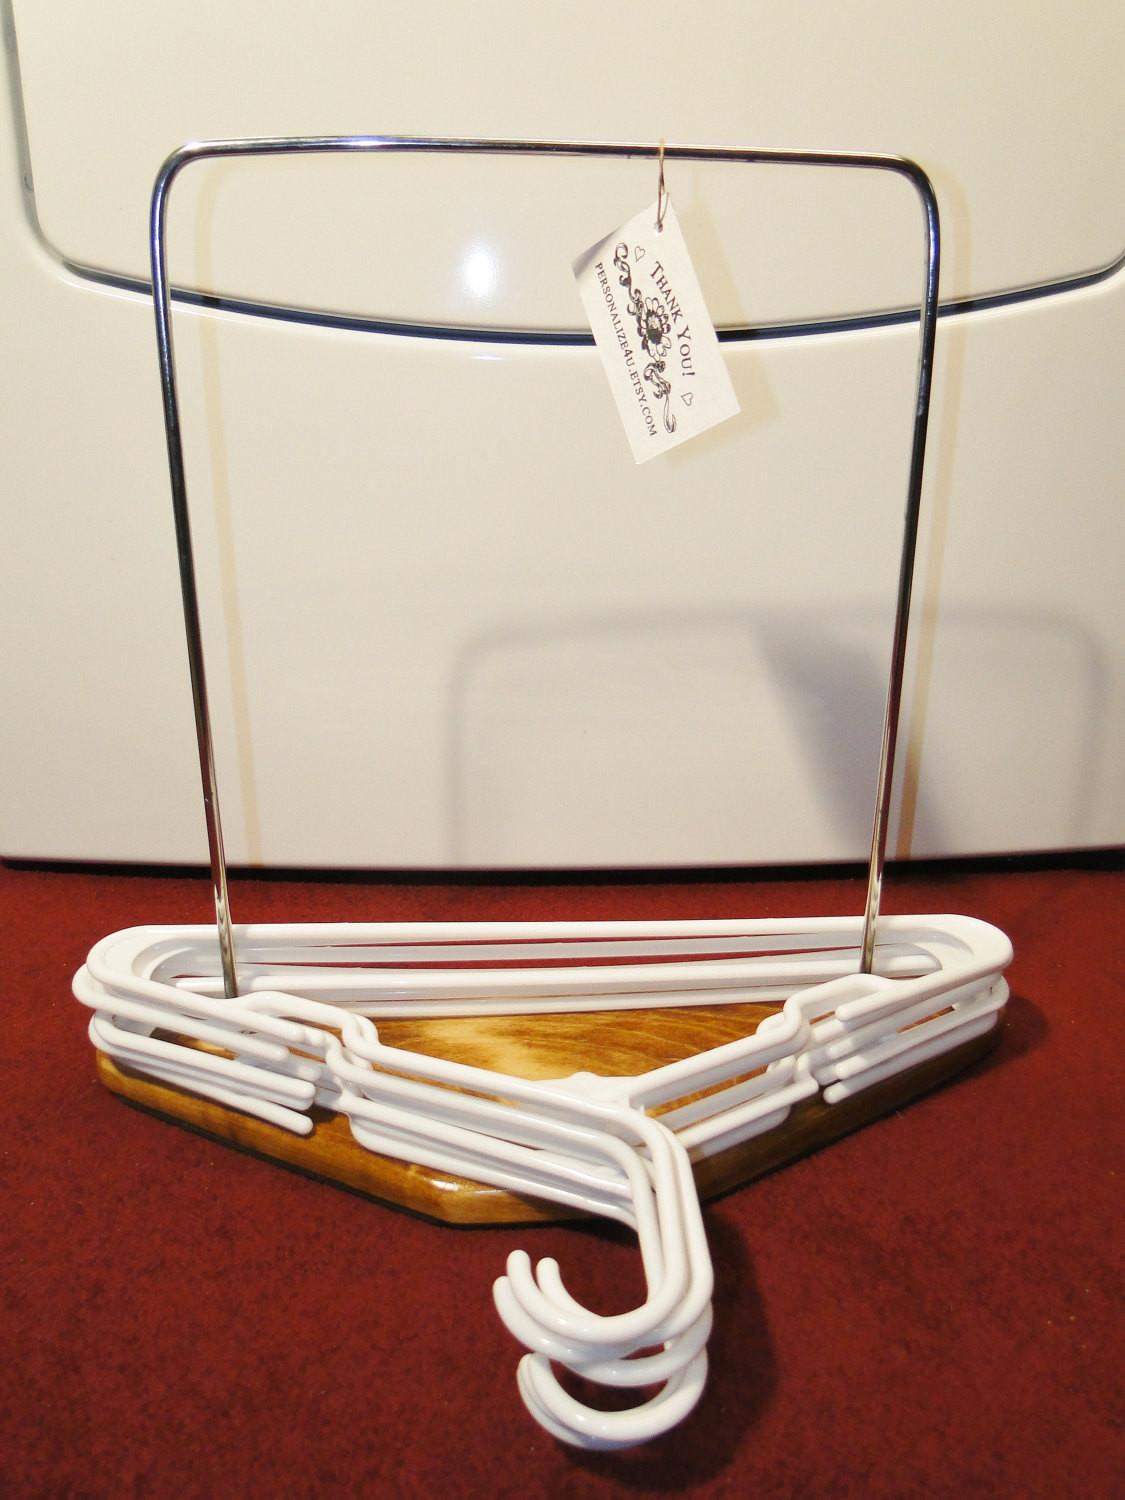 Clothes Hanger Organizer Stand Laundry Room Bedroom